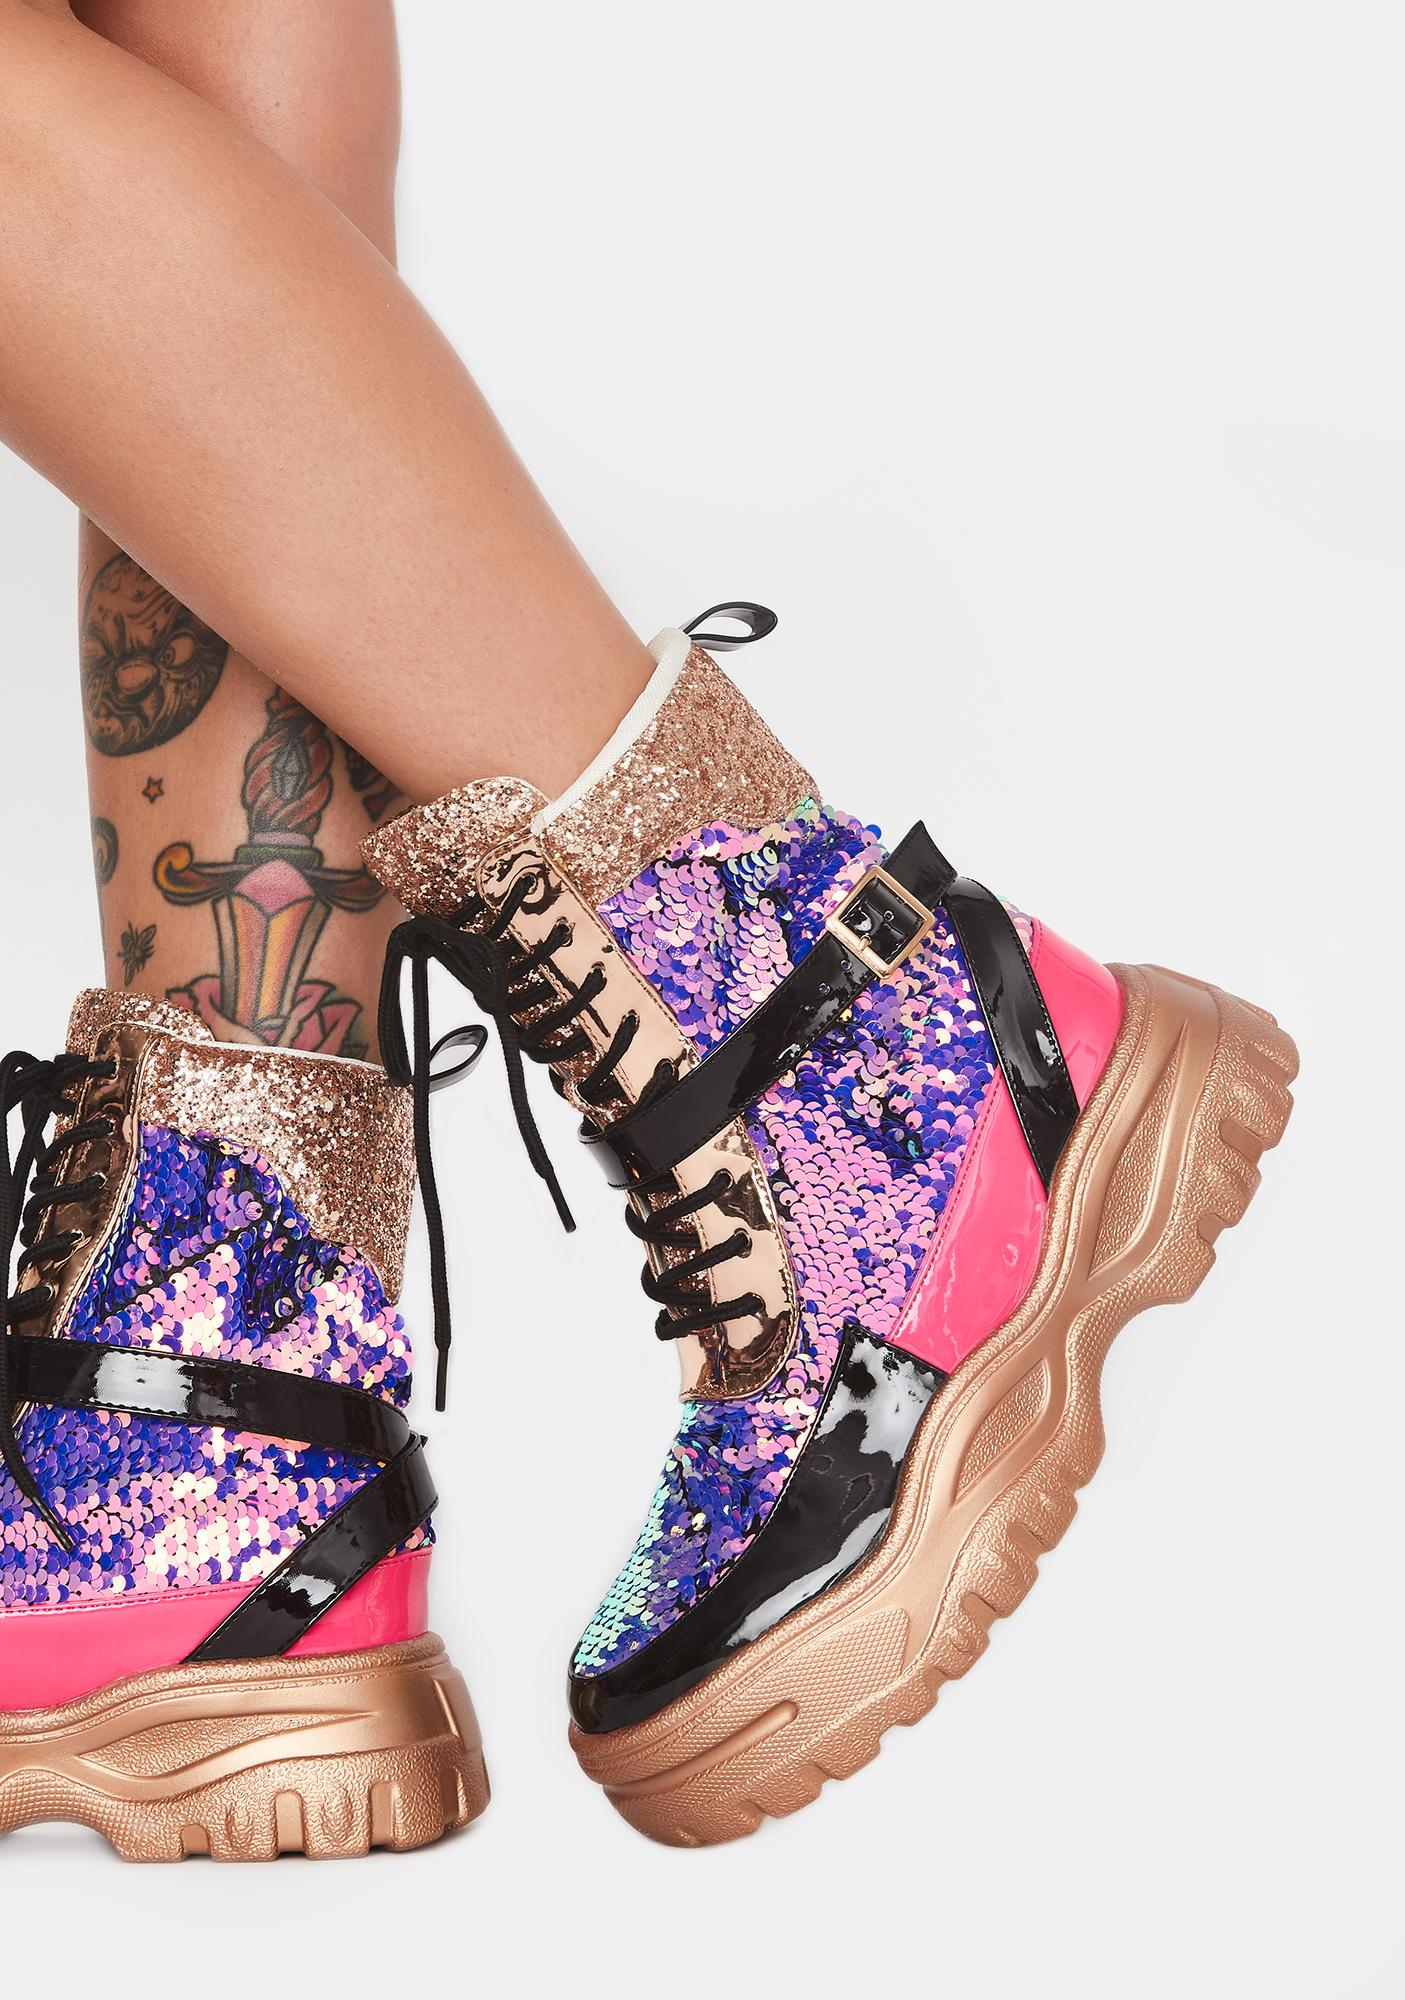 Astro Princess Lace Up Boots